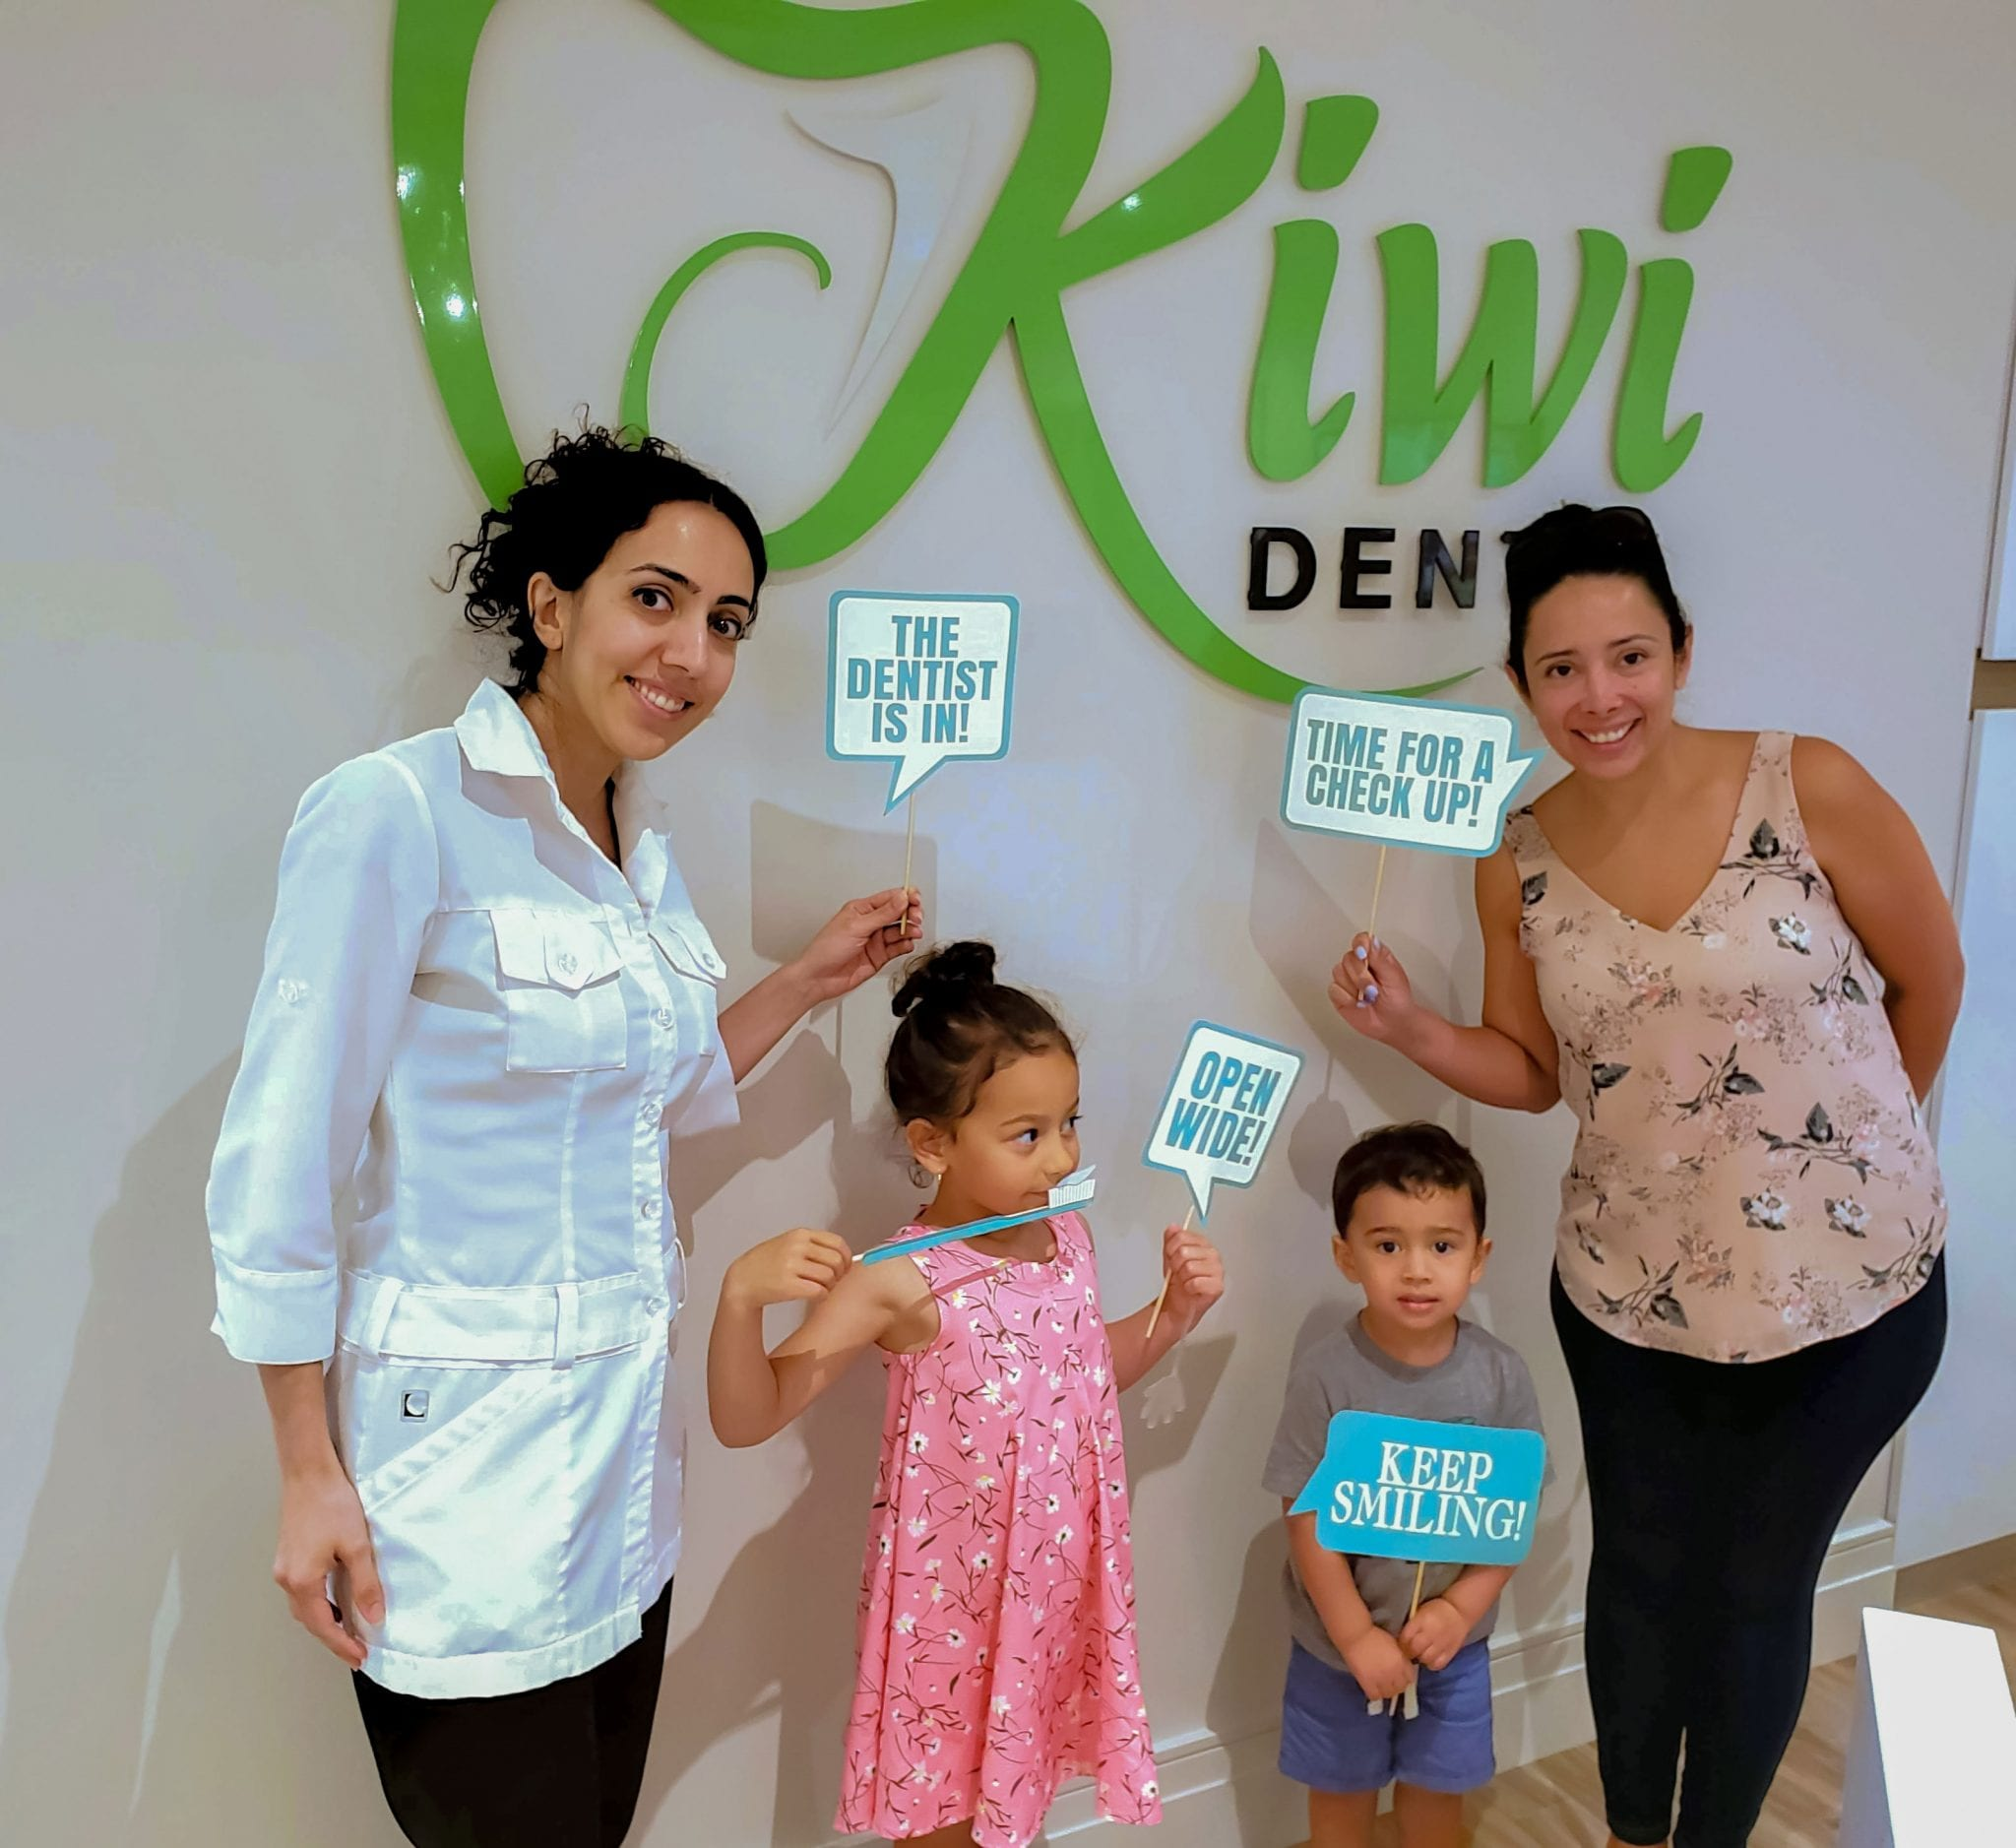 Kiwi Dental Office Family